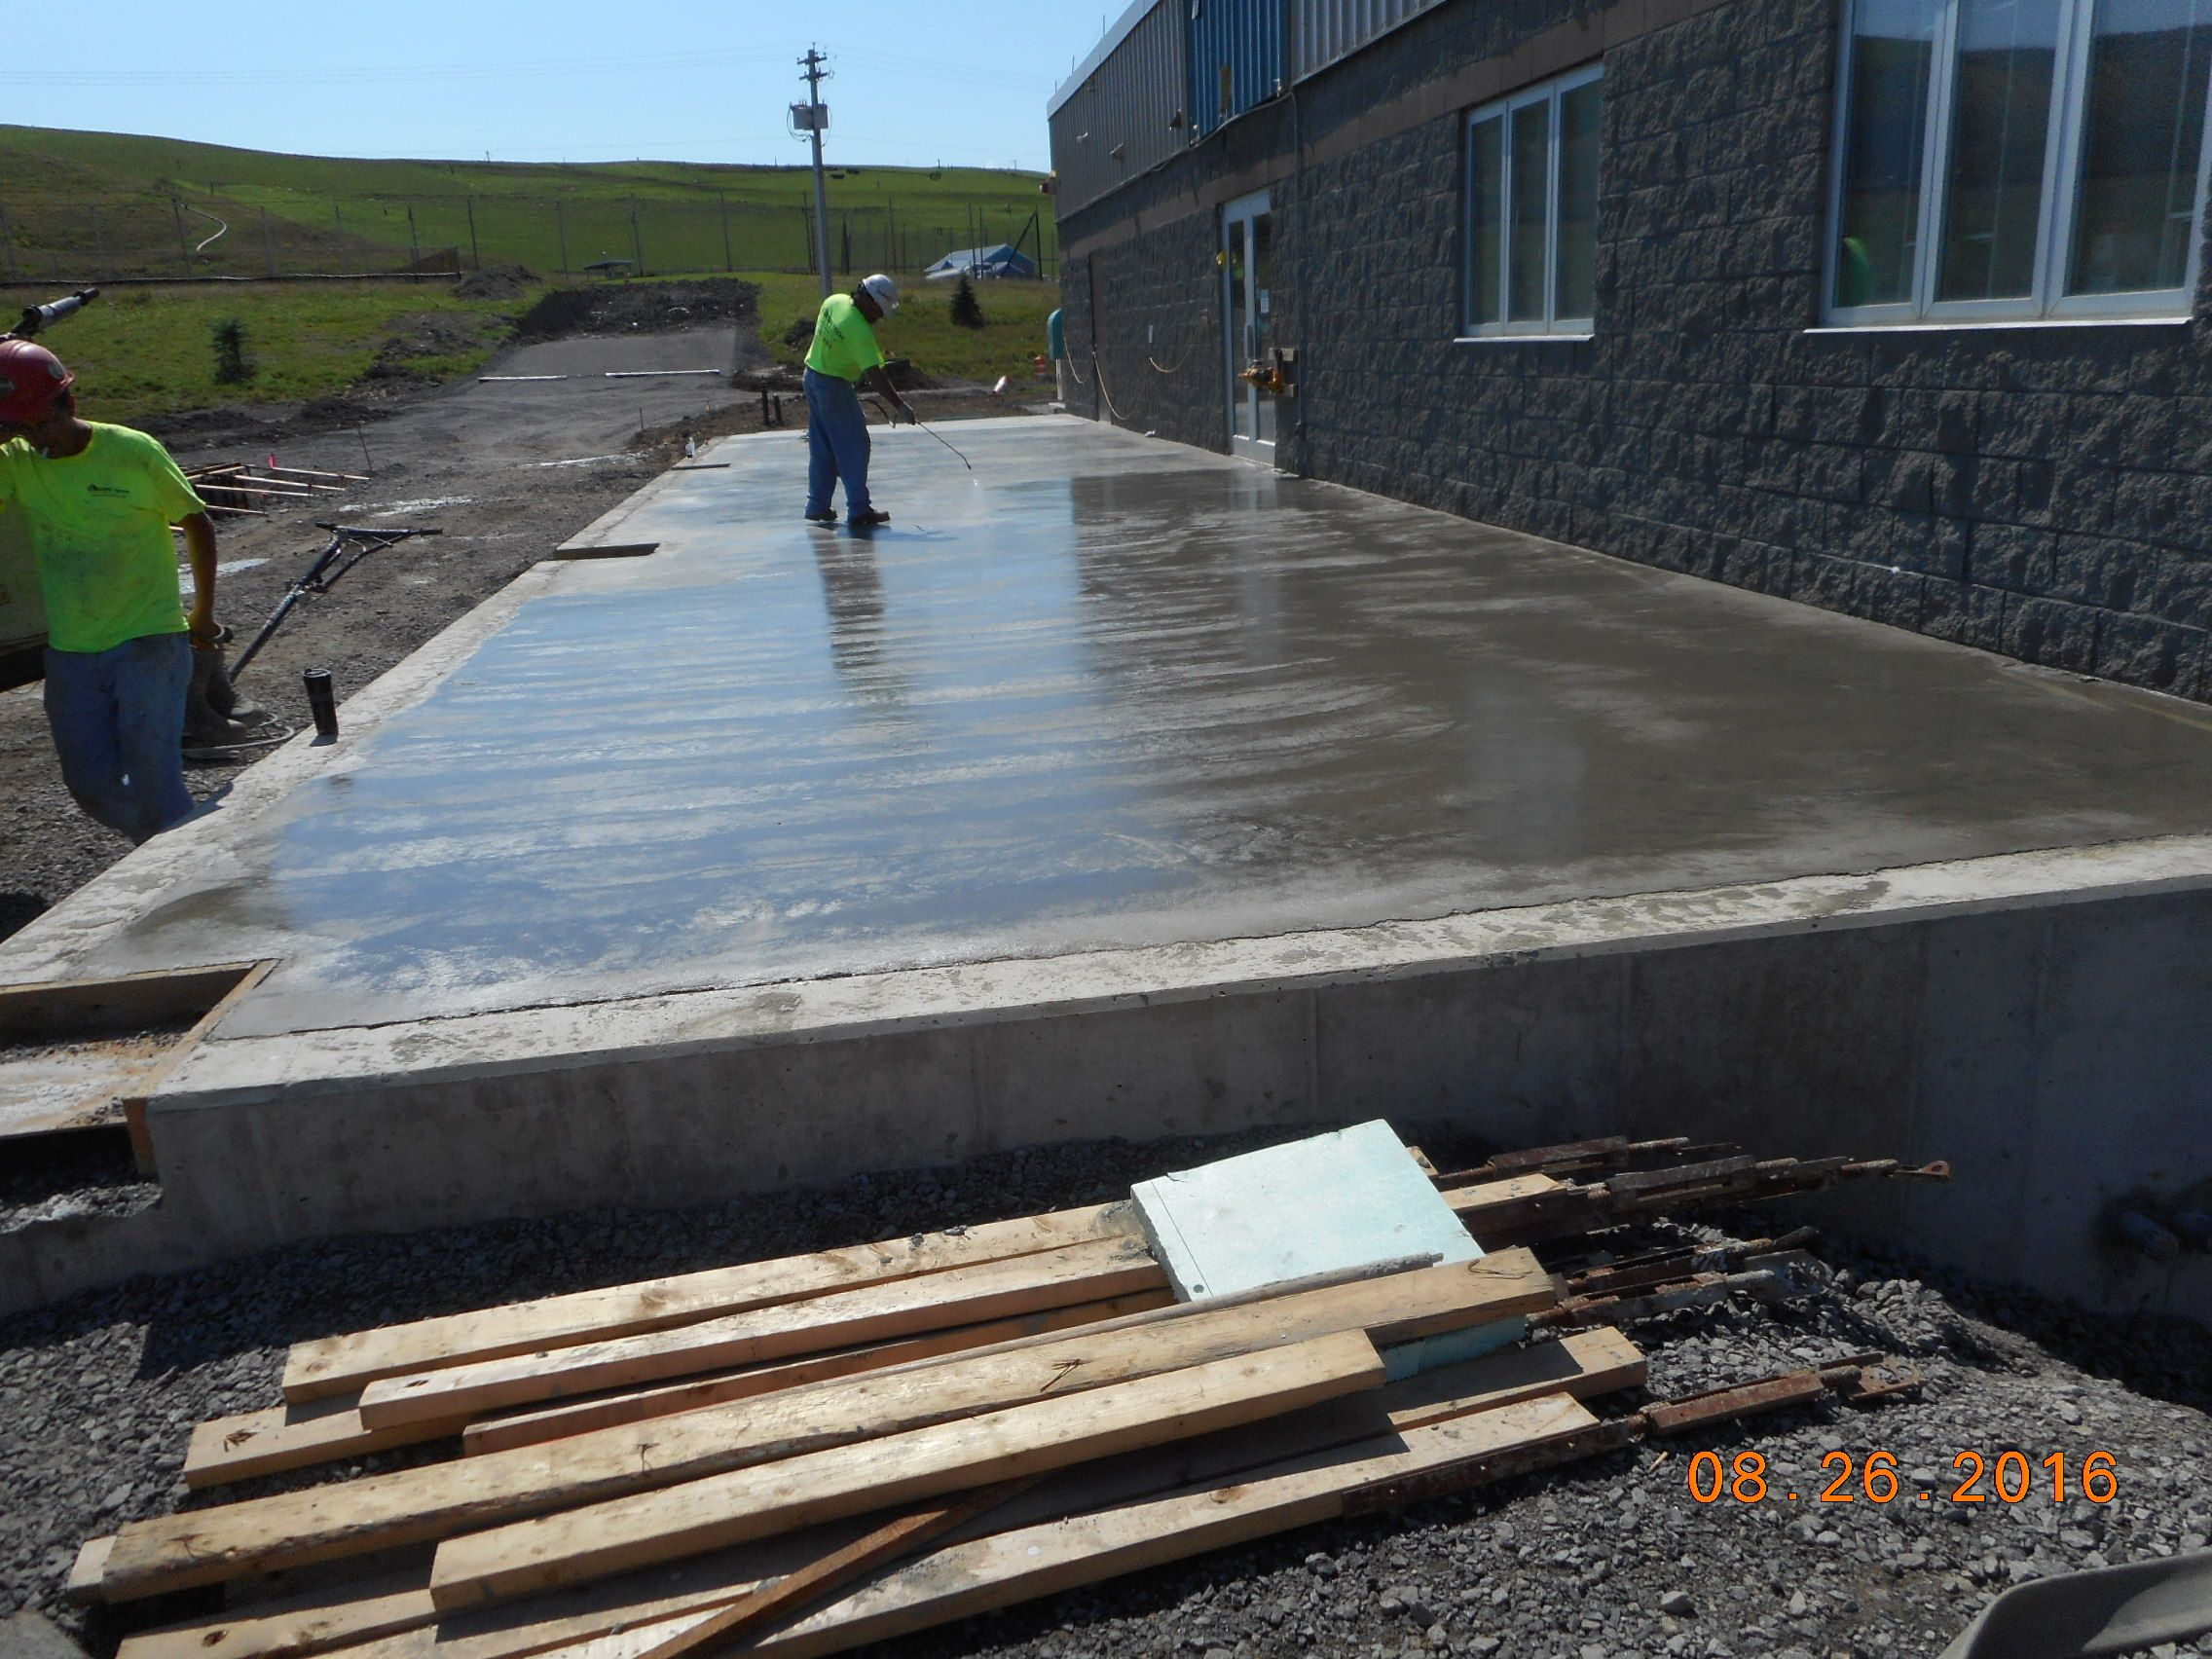 Development Authority of the North Country (DANC) - Scale House and Leachate Facility Project